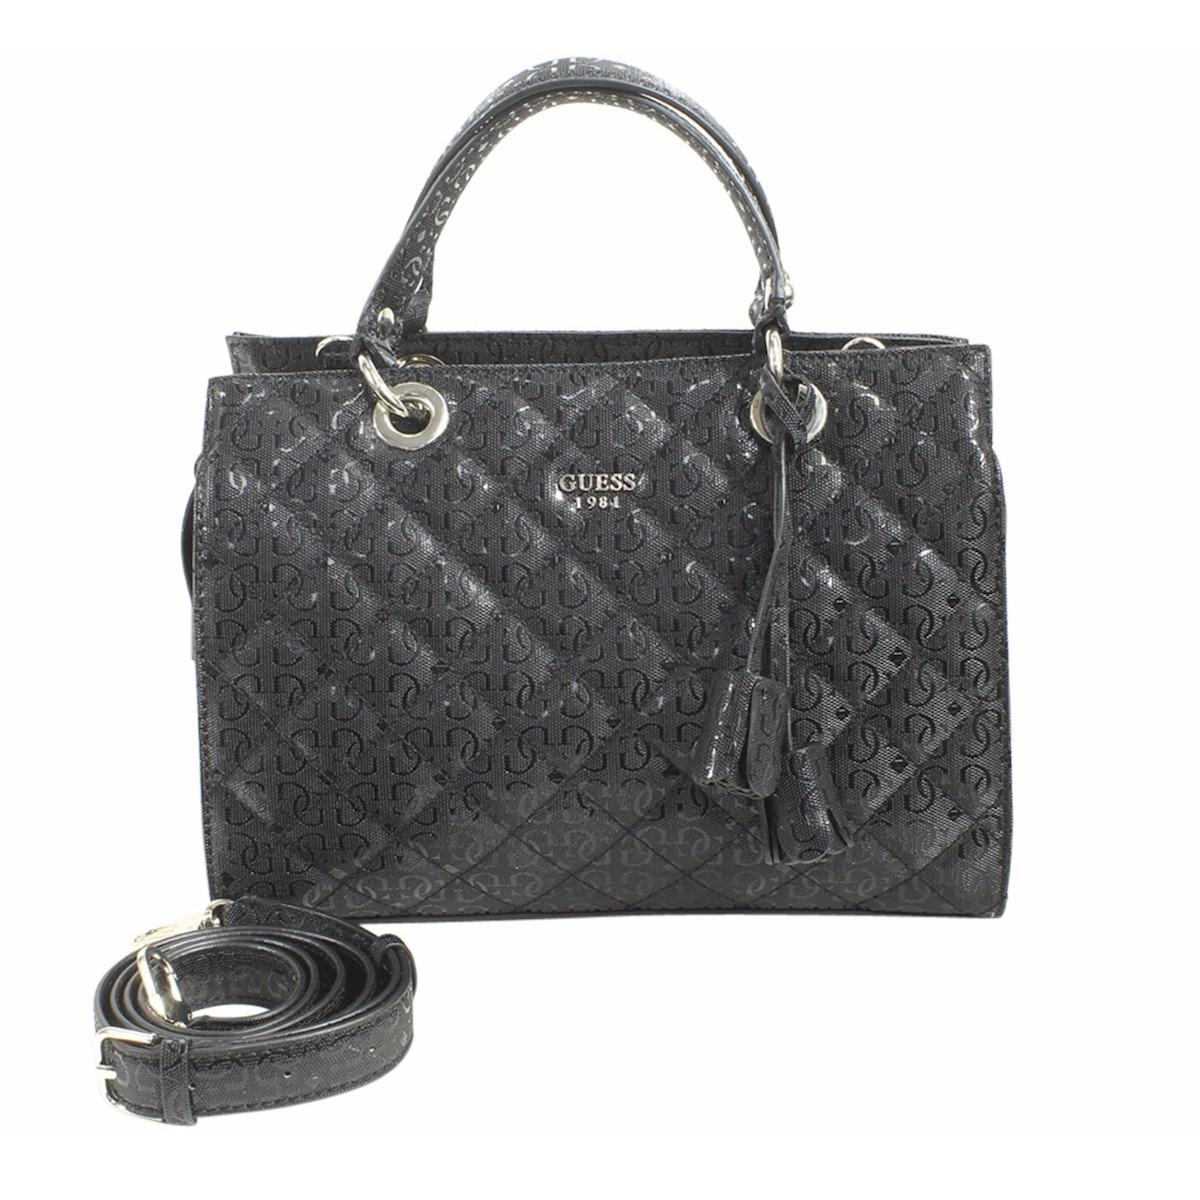 Guess Women s Seraphina Quilted Satchel Handbag by Guess d685c2bbae7dd